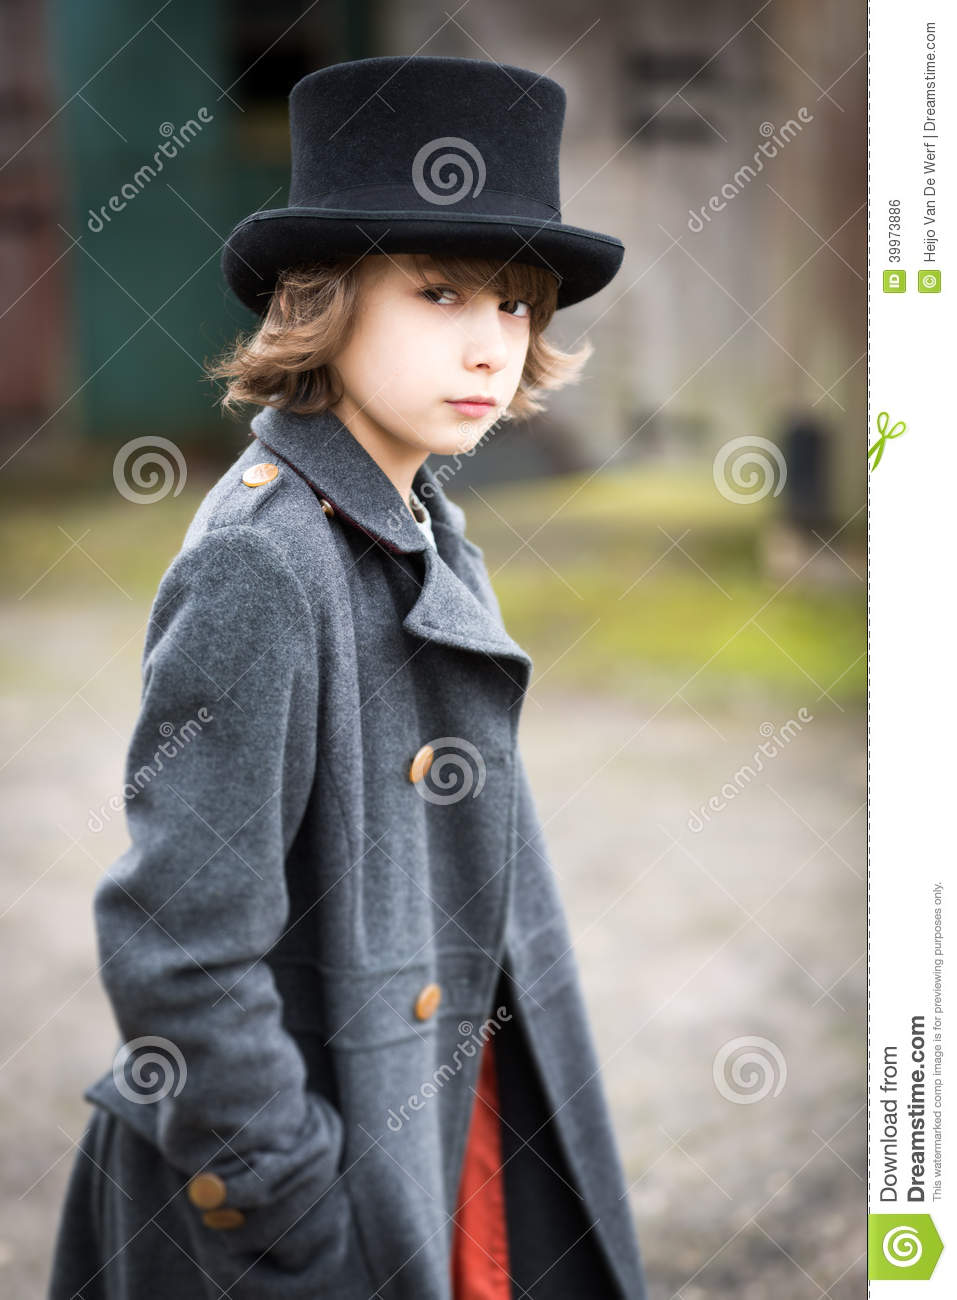 27585edec Boy In Long Coat And Top Hat Stock Photo - Image of fiction ...